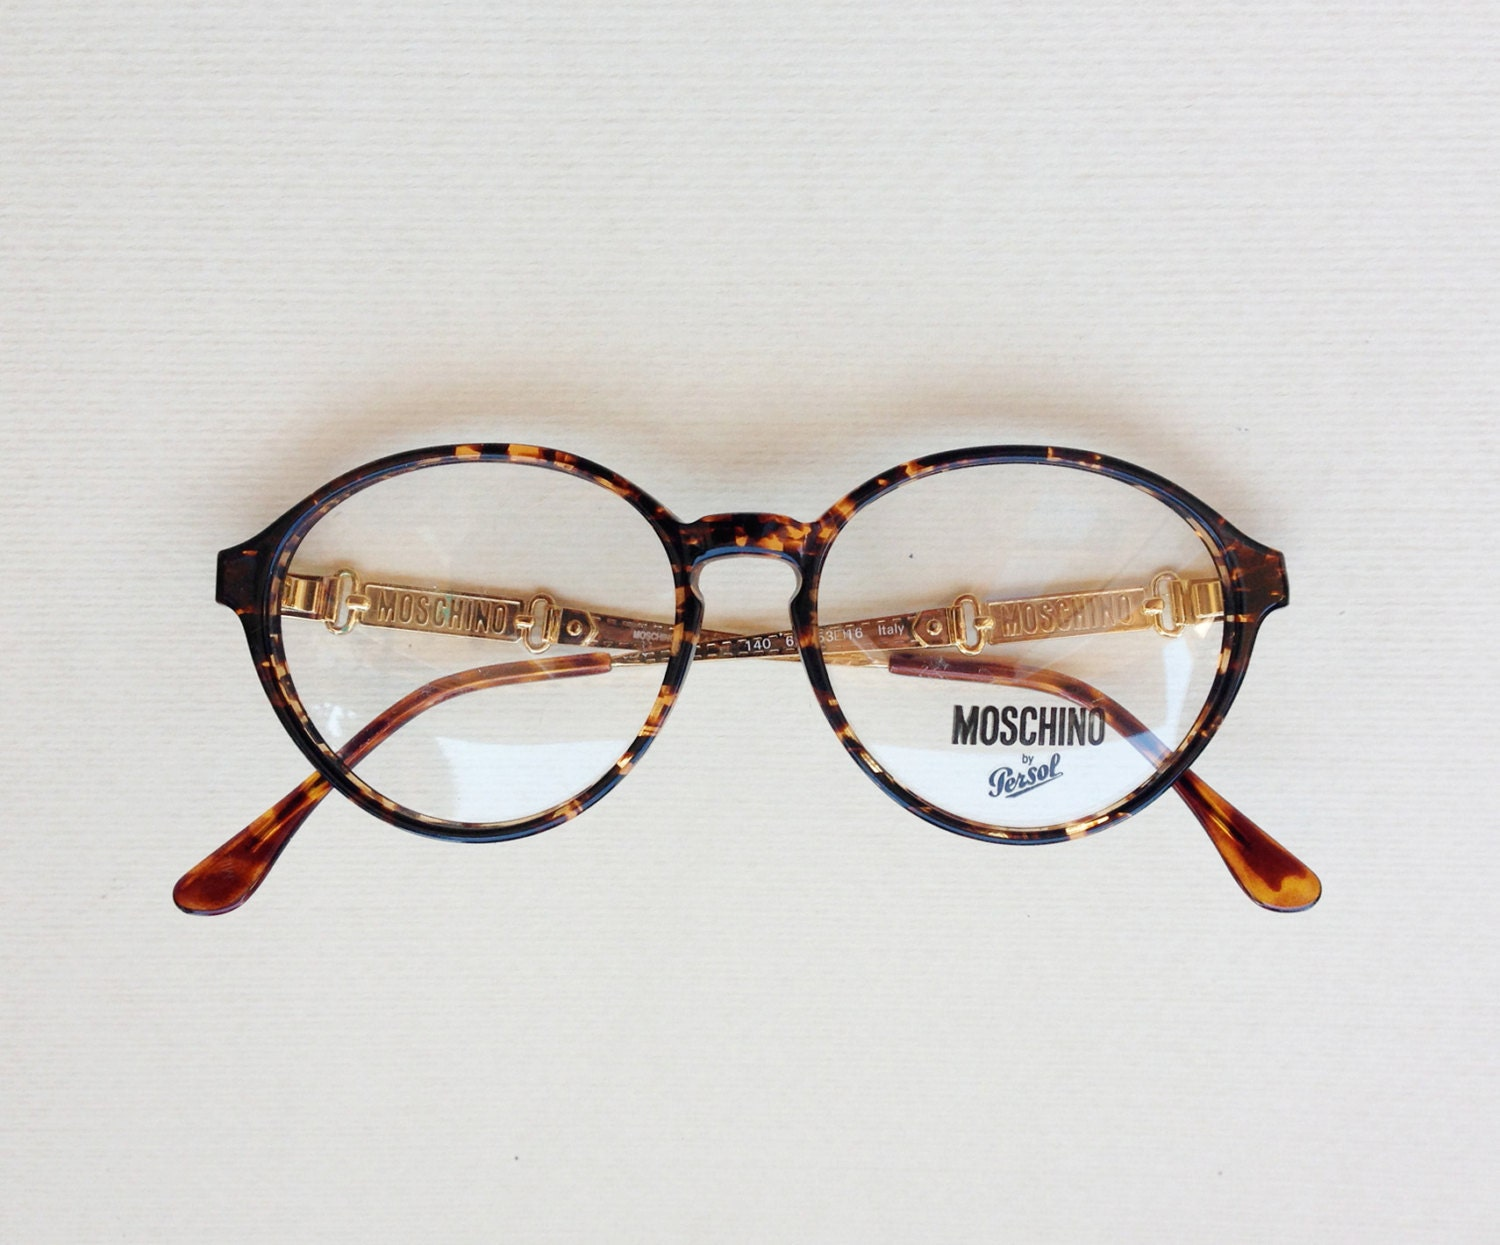 moschino by persol vintage eyeglasses 80s gold brown